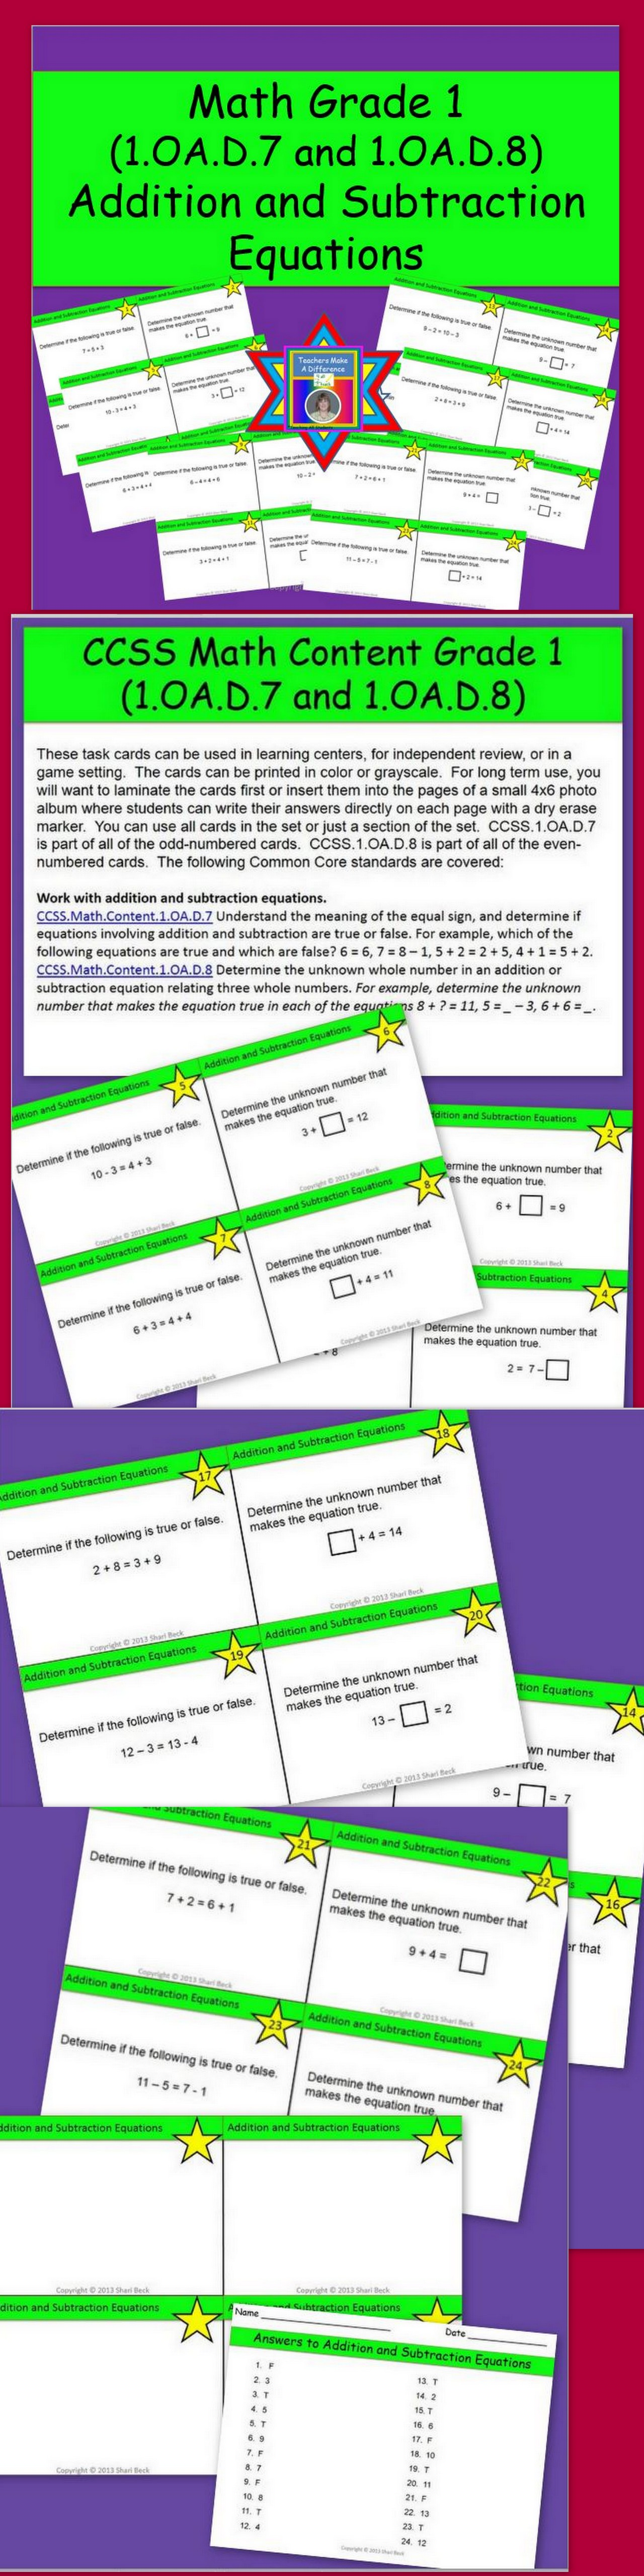 Addition And Subtraction Equations Task Cards Ccss 1 Oa D